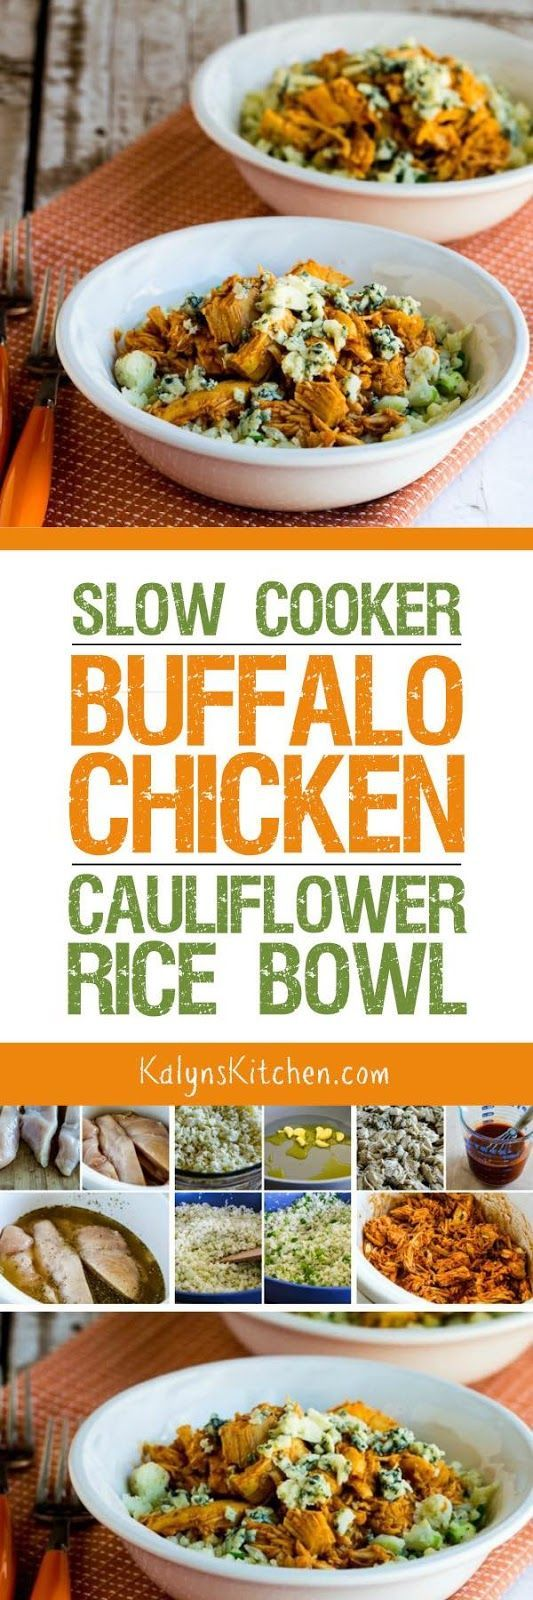 Buffalo Chicken Cauliflower Rice Bowl, Slow Cooker or Pressure Cooker (Video)